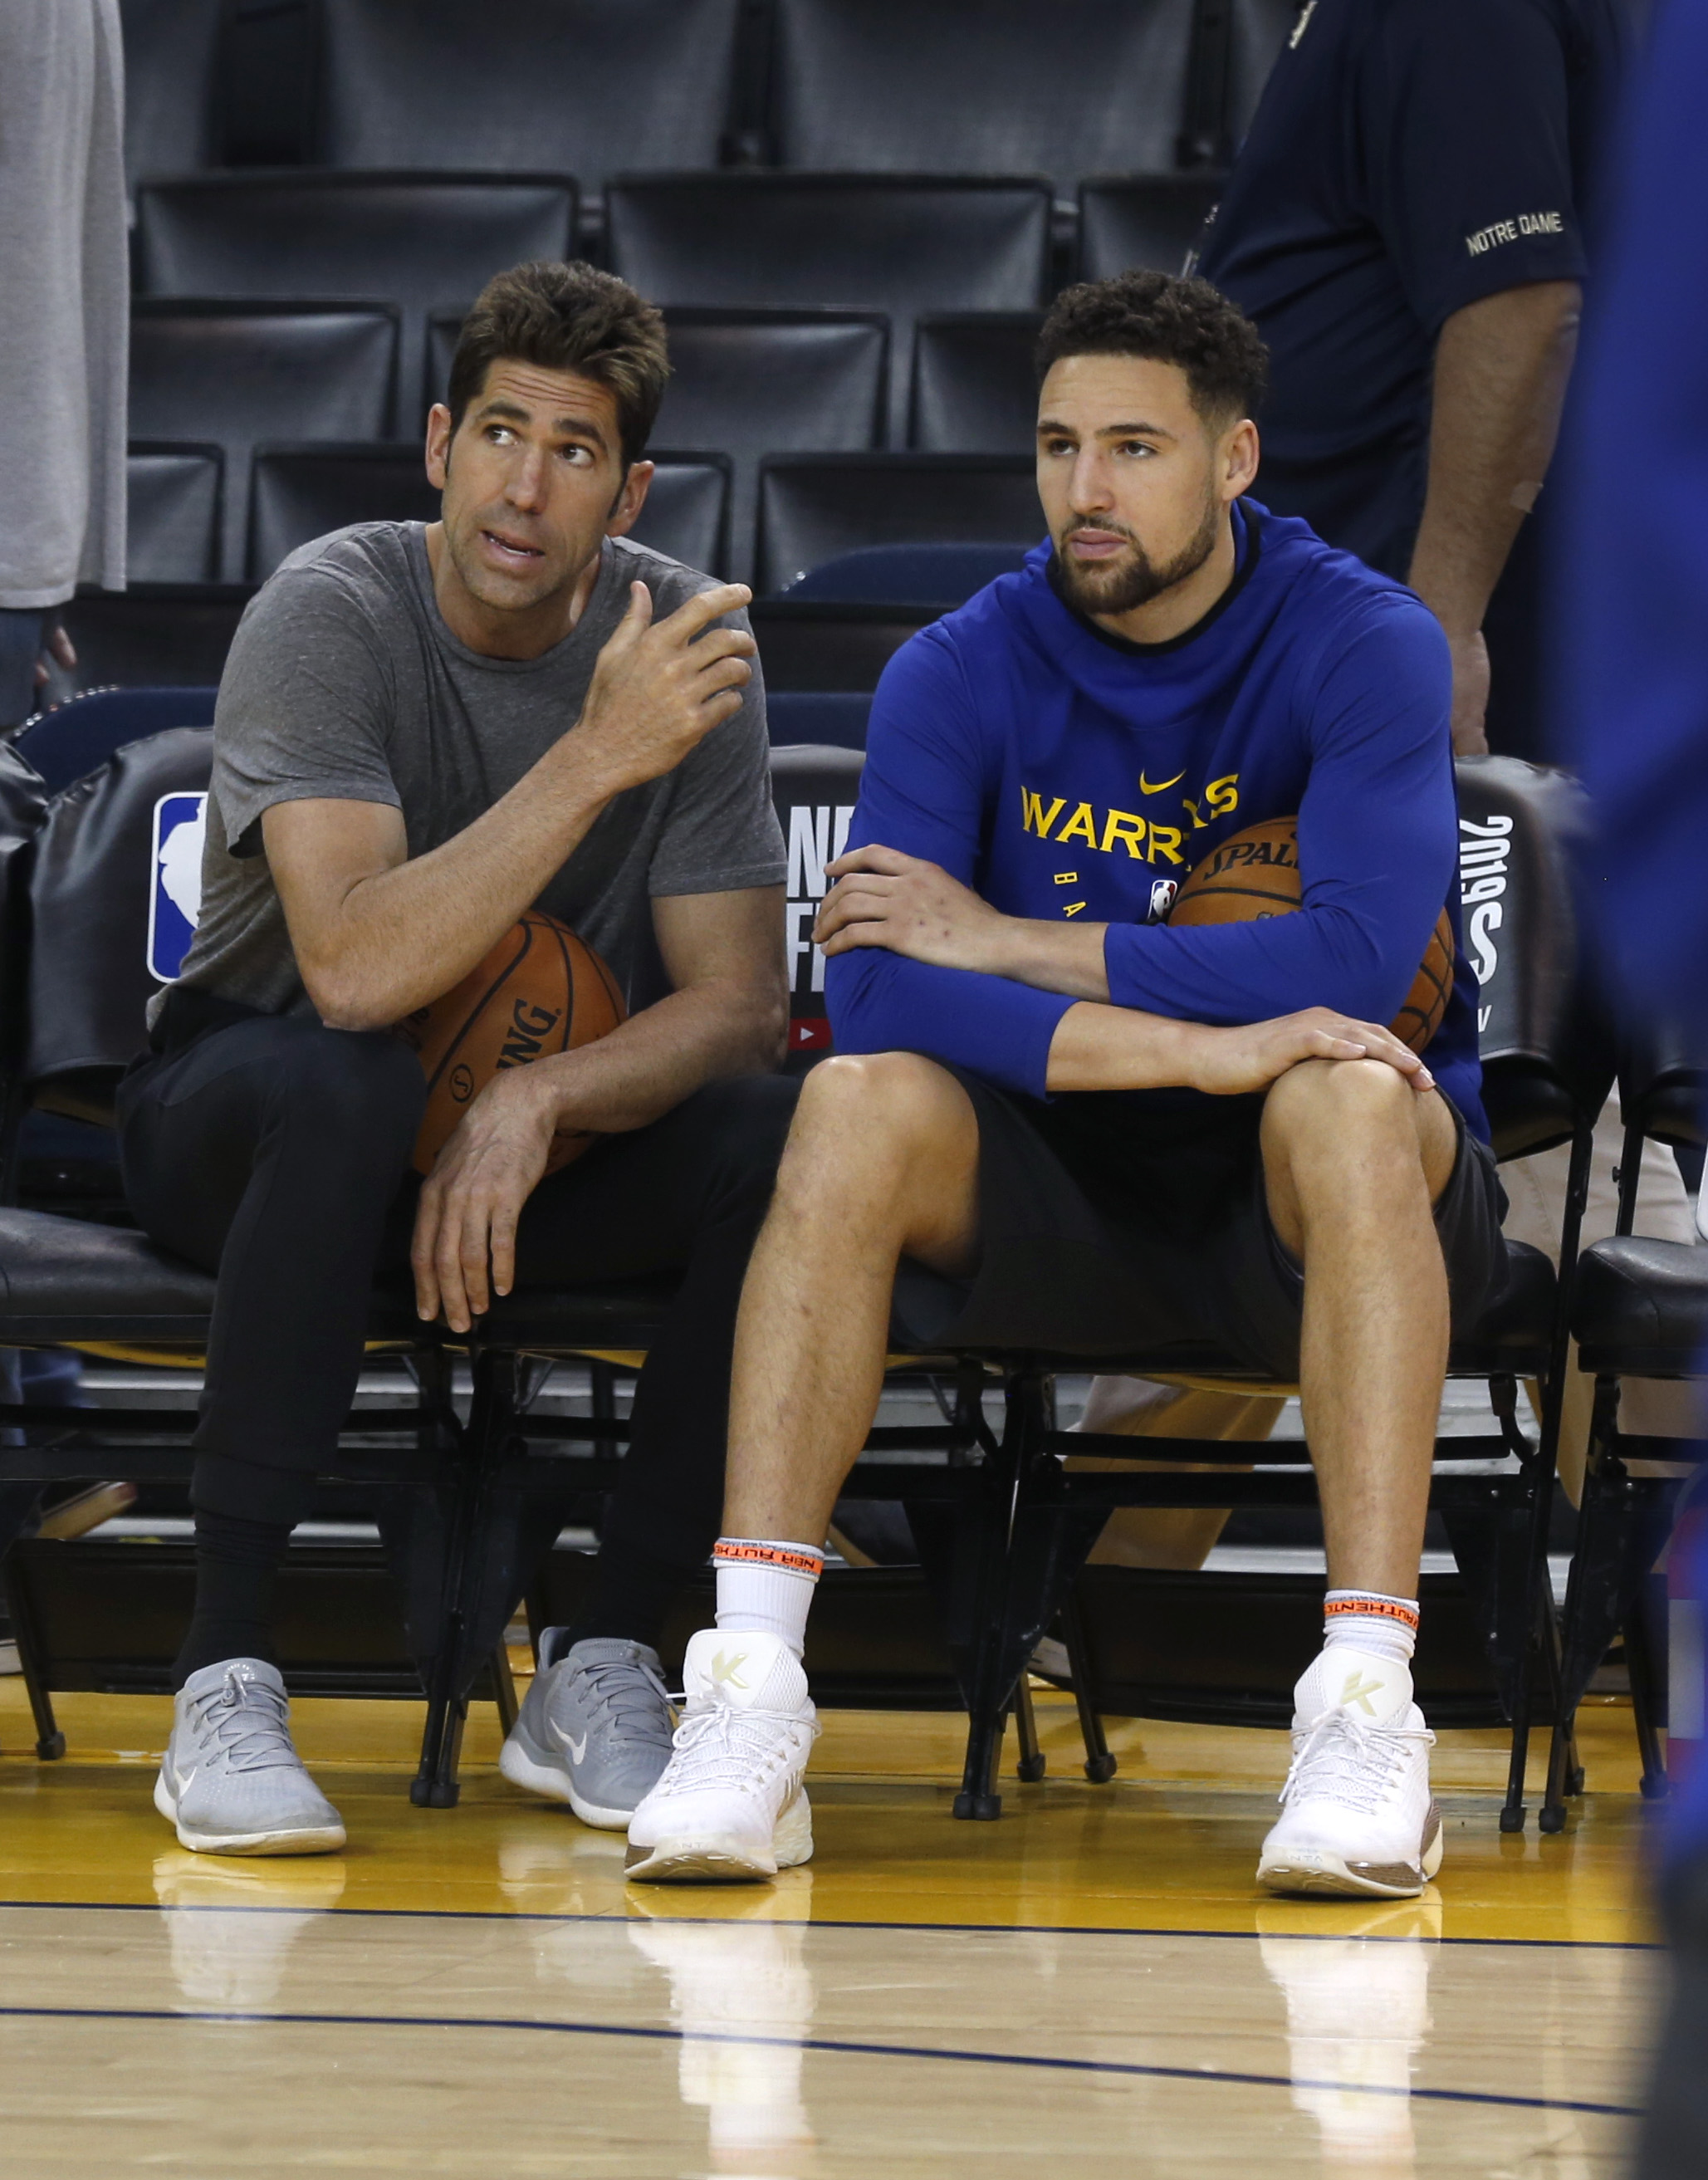 General manager Bob Myers speaks with Klay Thompson during a Golden State Warriors practice at Oracle Arena in Oakland, Calif. on Tuesday, June 4, 2019 before tomorrow's Game 3 of the NBA Finals against the Toronto Raptors.